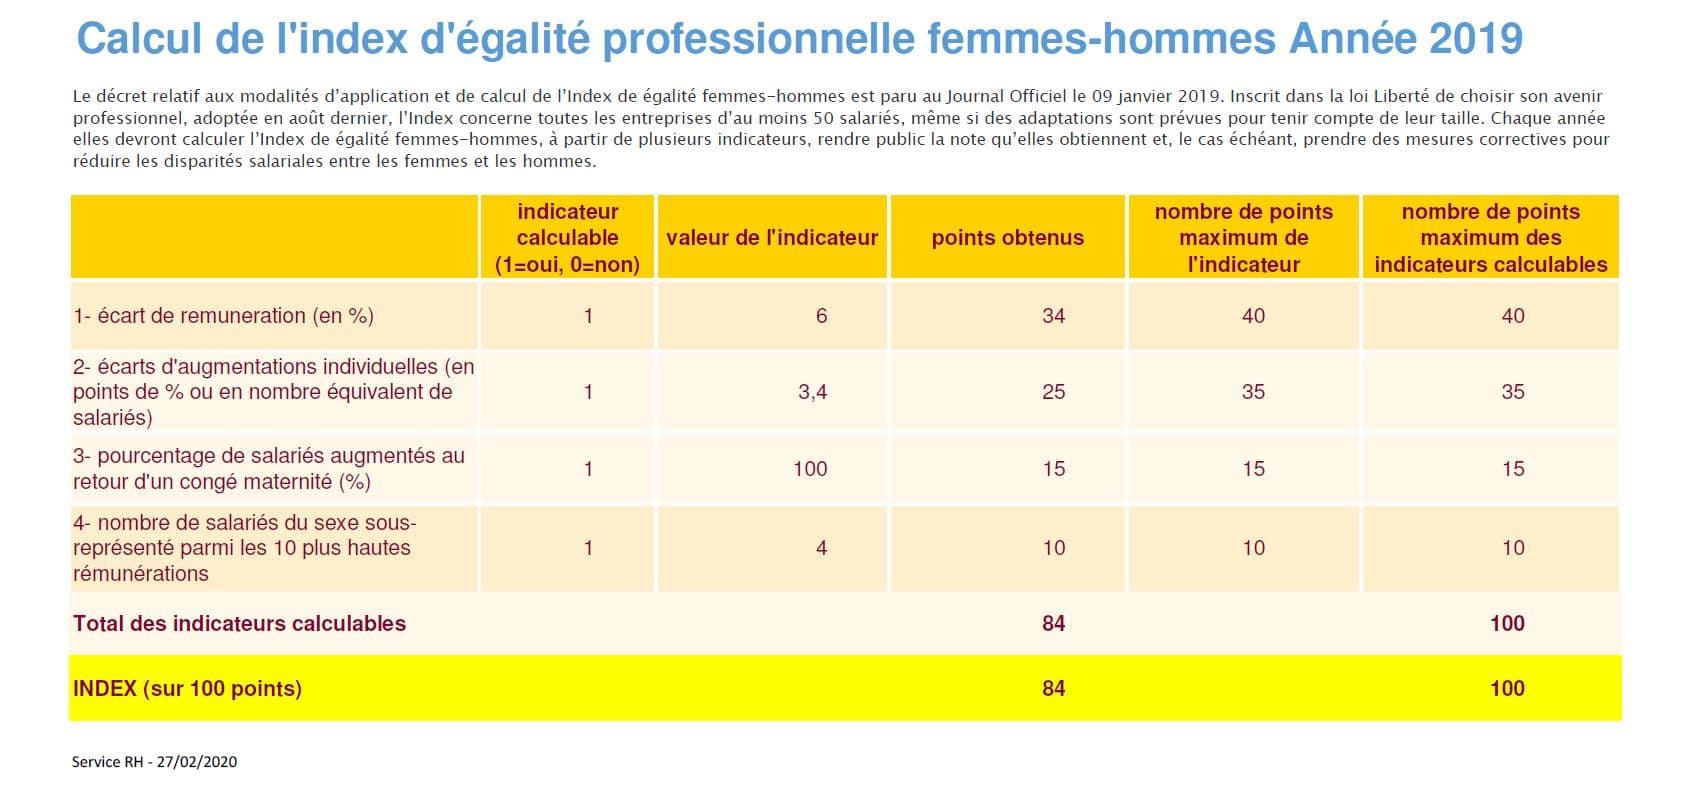 Capture index femmes hommes 2019